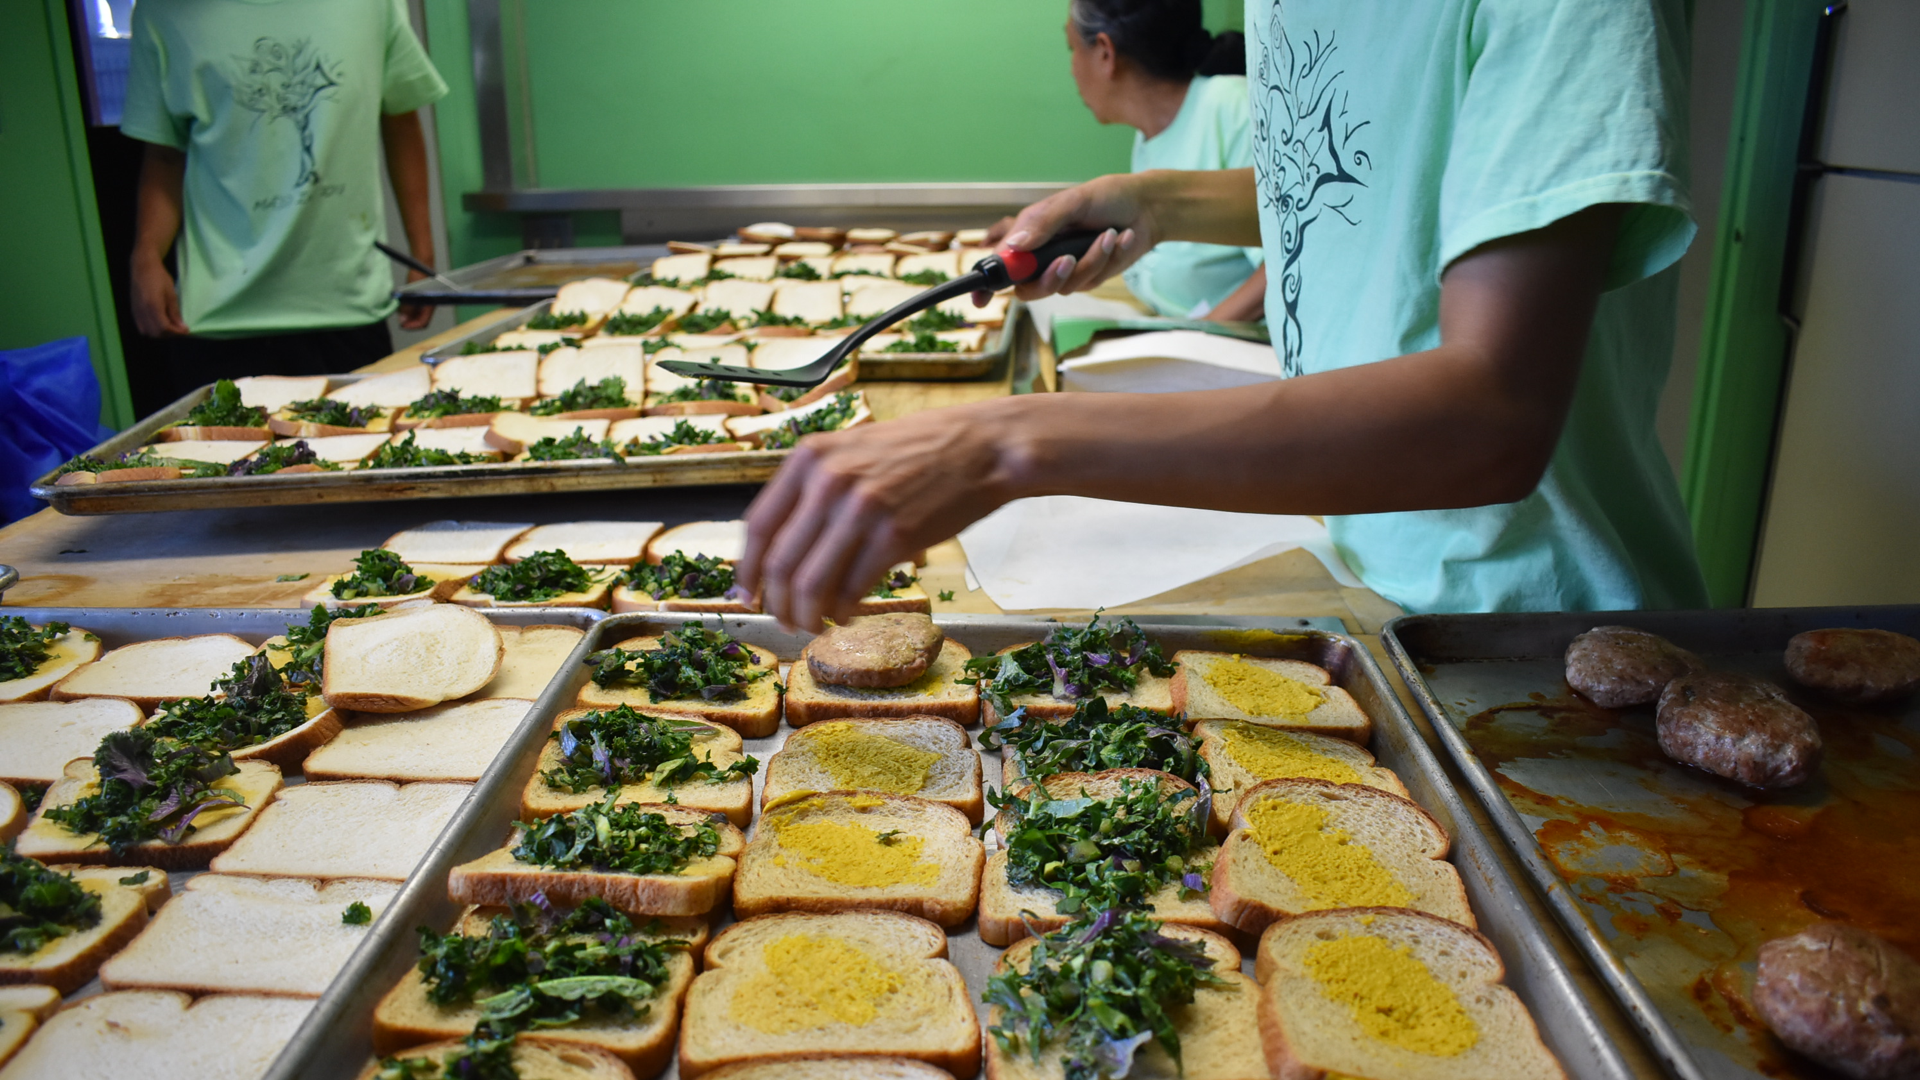 Empowering young people in Long Beach with critical skills and healthy meals. -